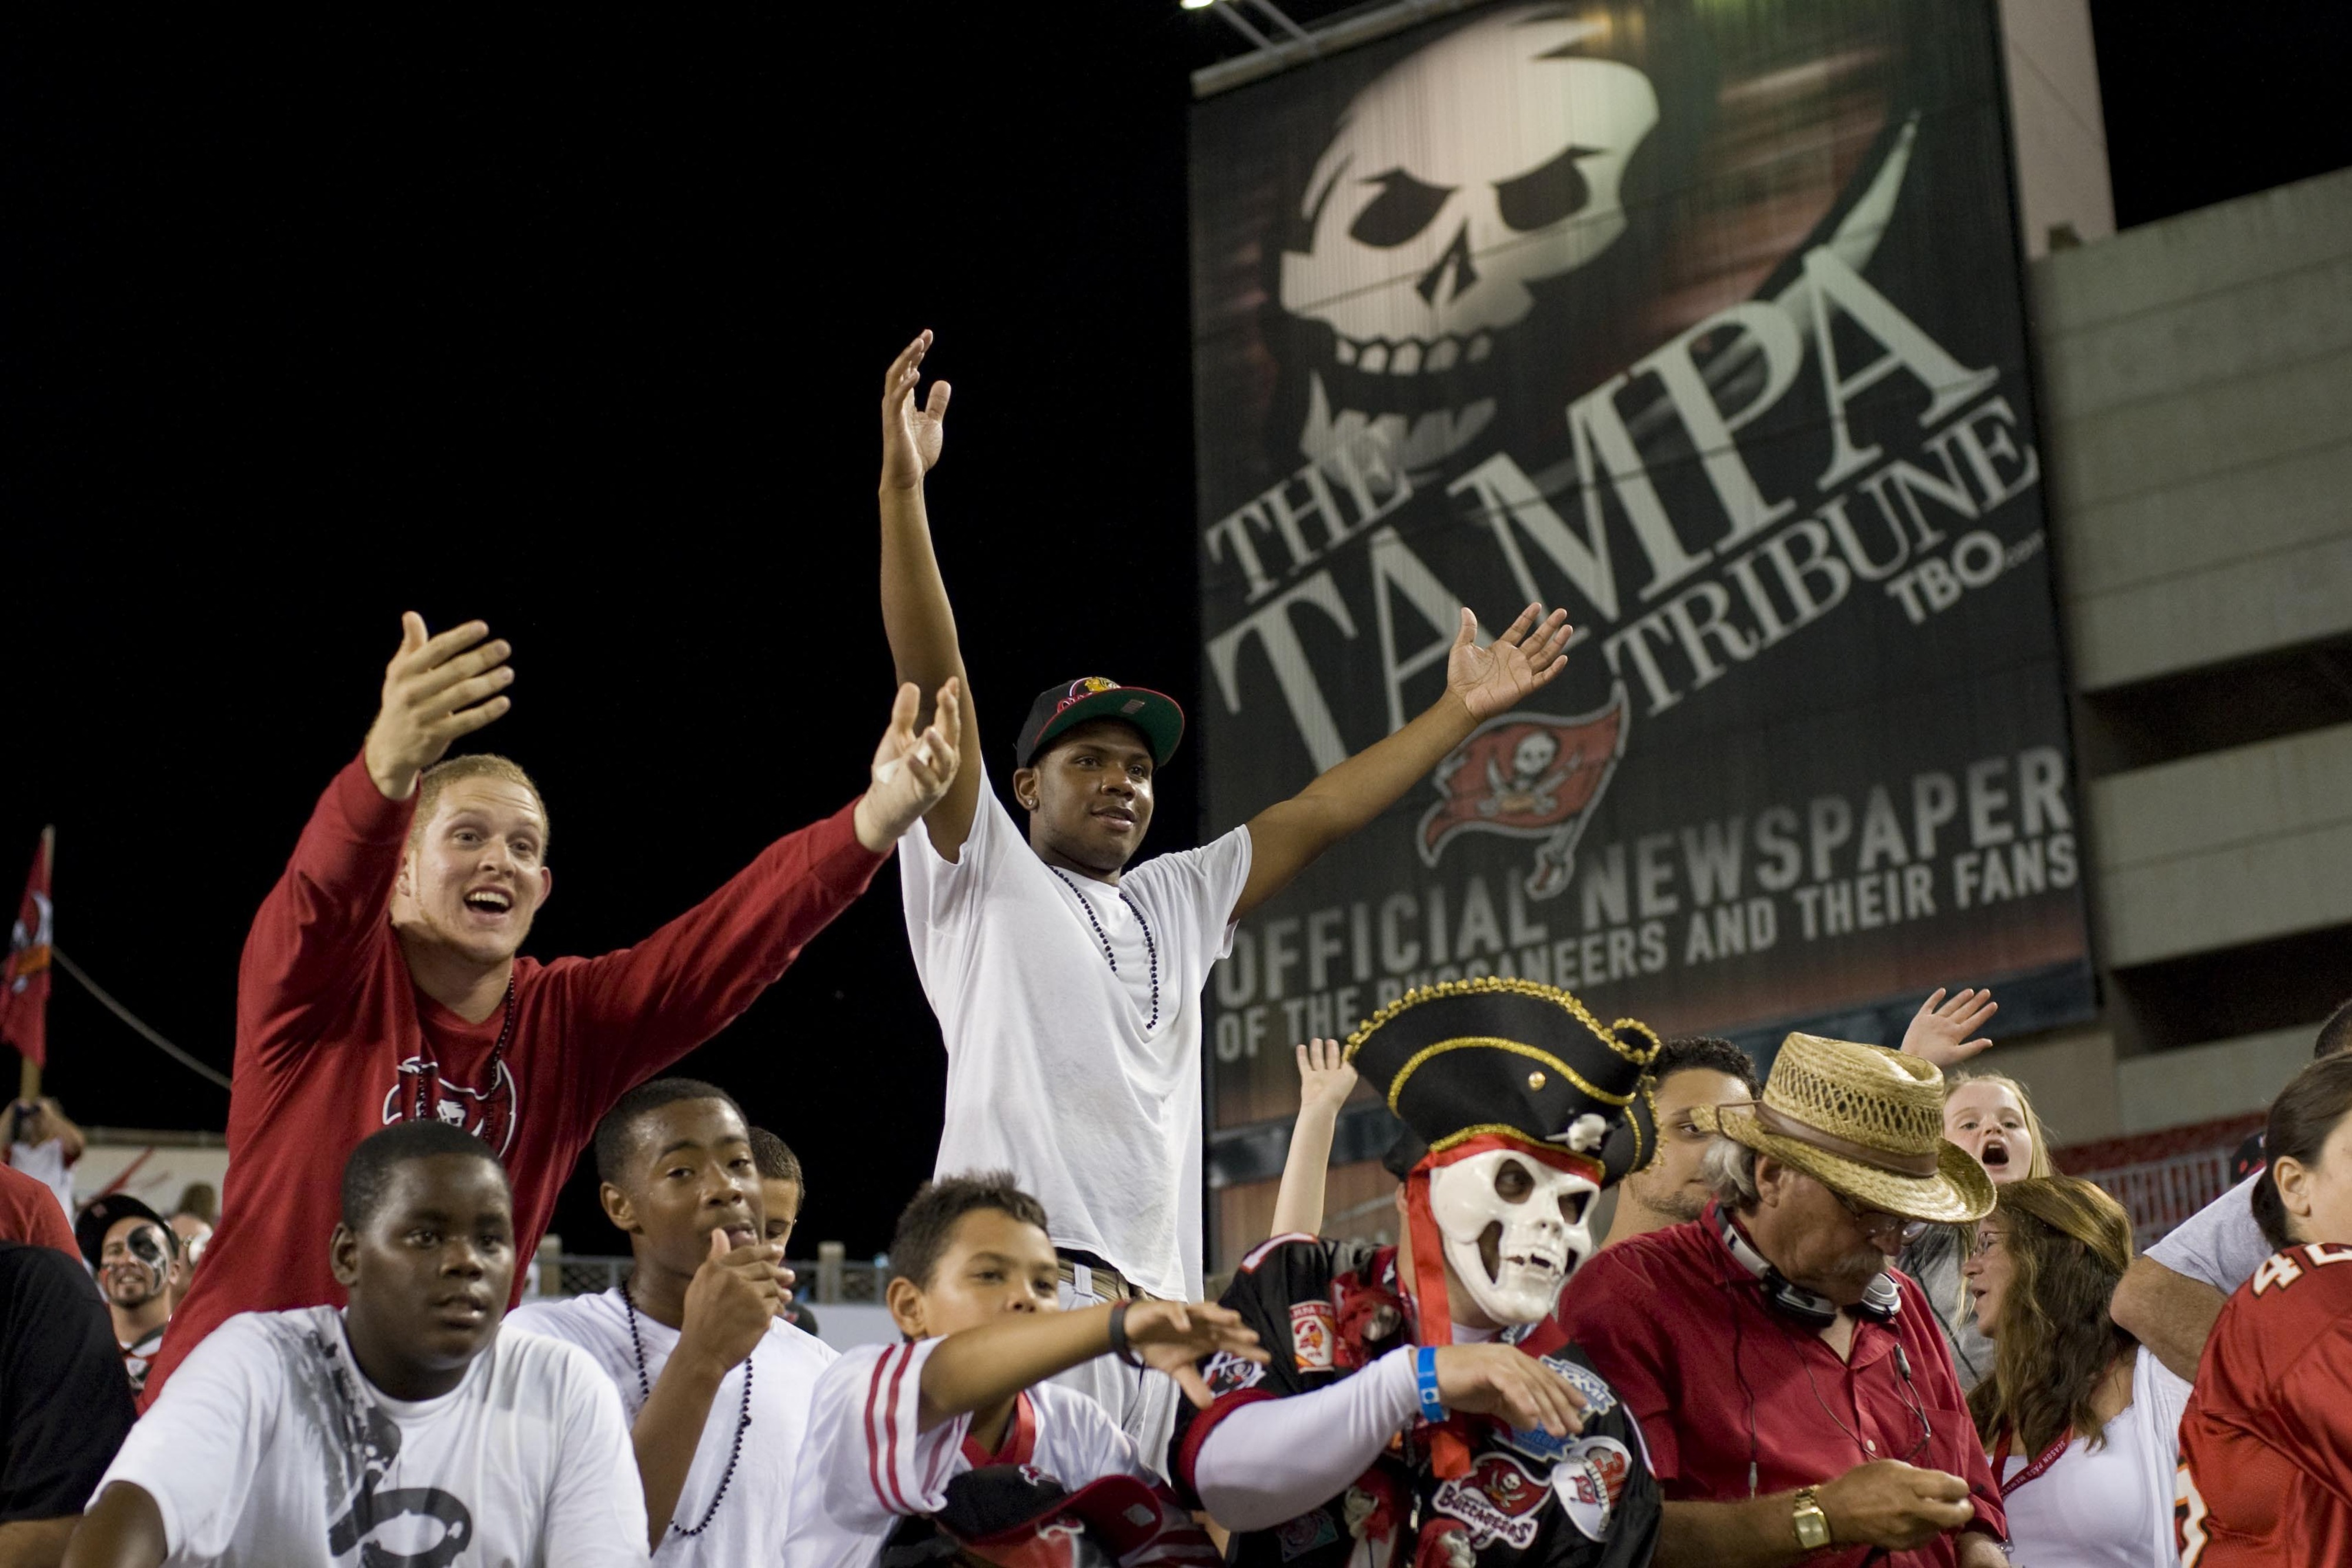 August 17, 2012; Tampa, FL, USA; Tampa Bay Buccaneers fans after a game against the Tennessee Titans at Raymond James Stadium.  Mandatory Credit: Jeff Griffith-US PRESSWIRE